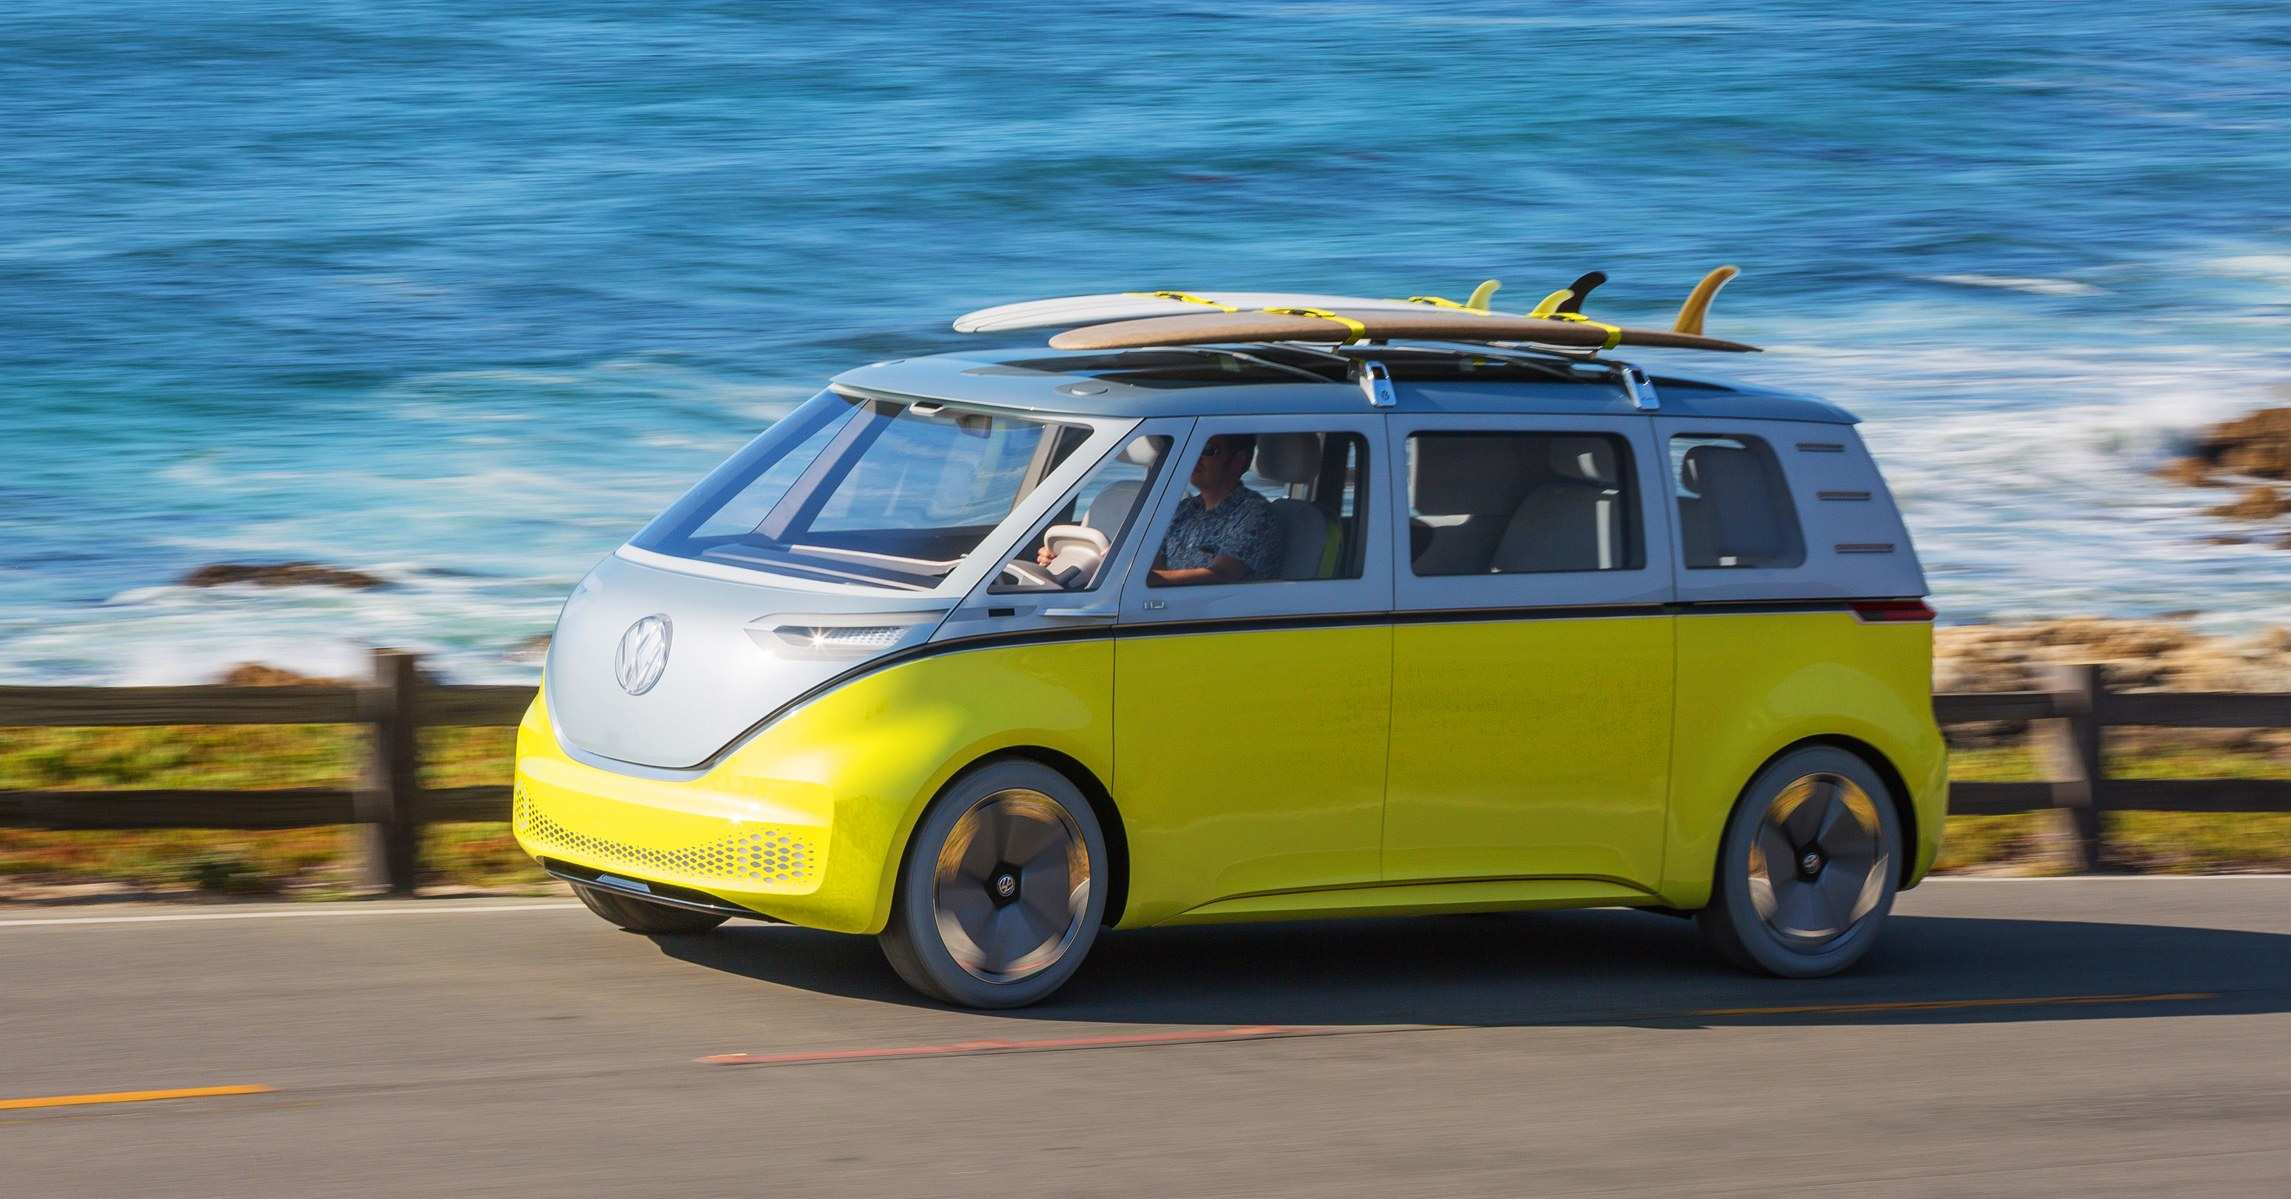 17 New VW Bus 2020 Photos with VW Bus 2020